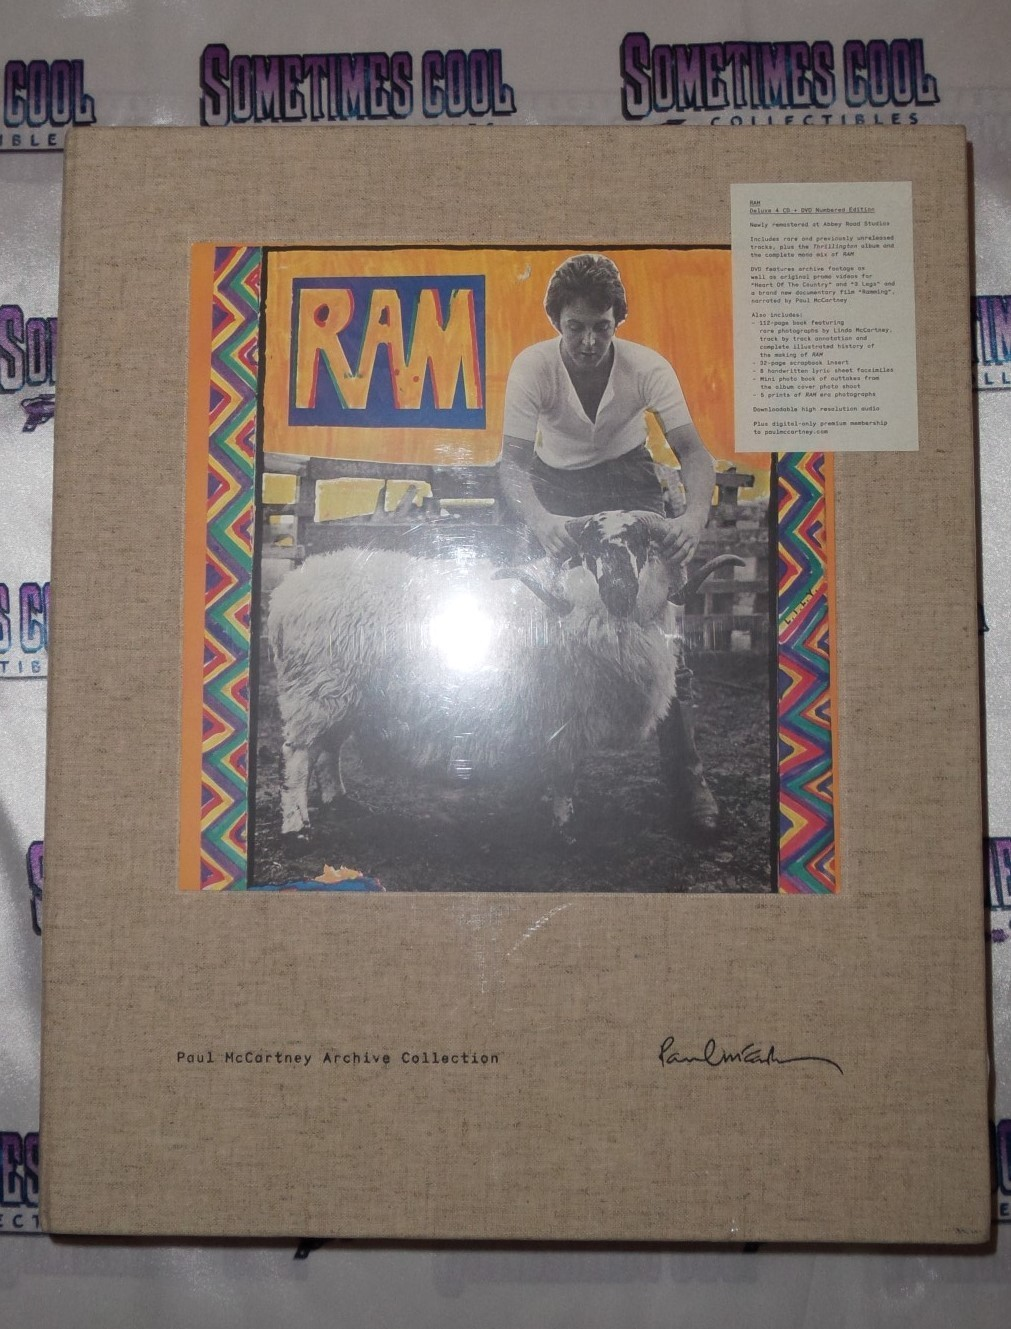 Paul McCartney Archive Collection :  Ram